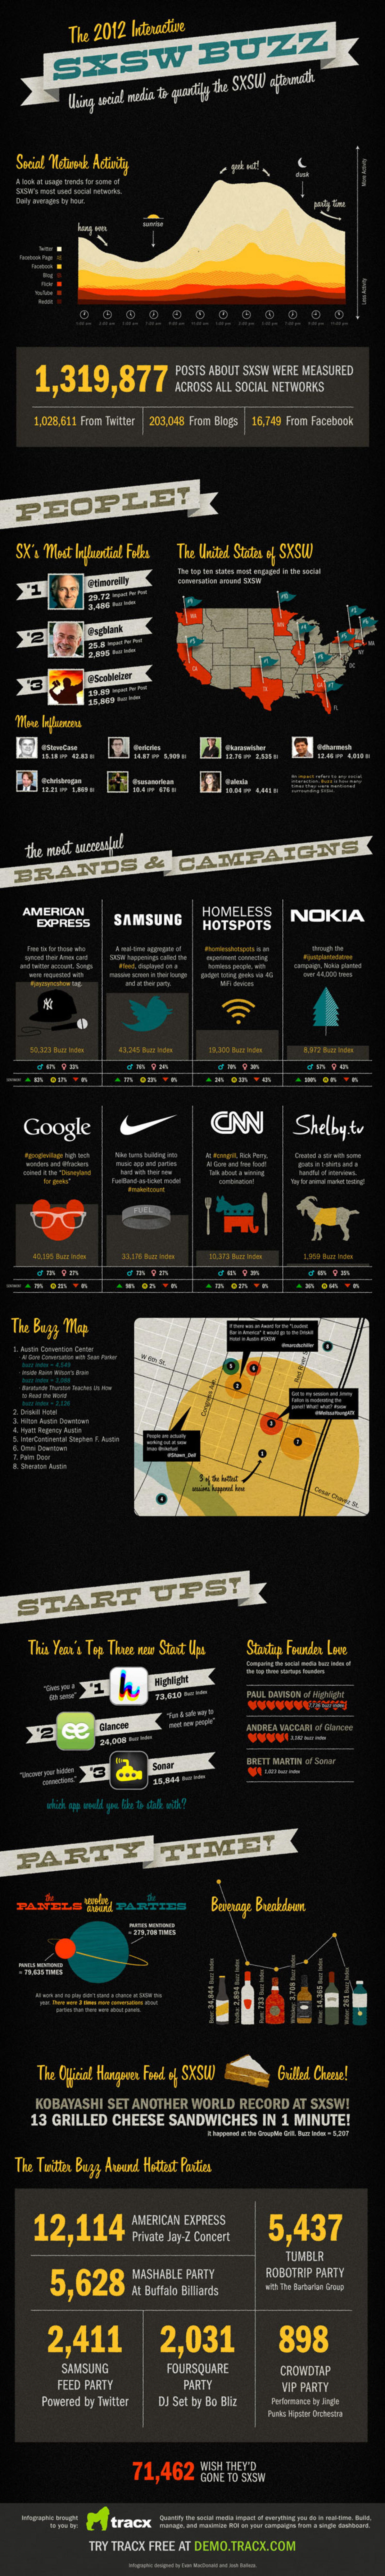 The 2012 Interactive SXSW Buzz Infographic